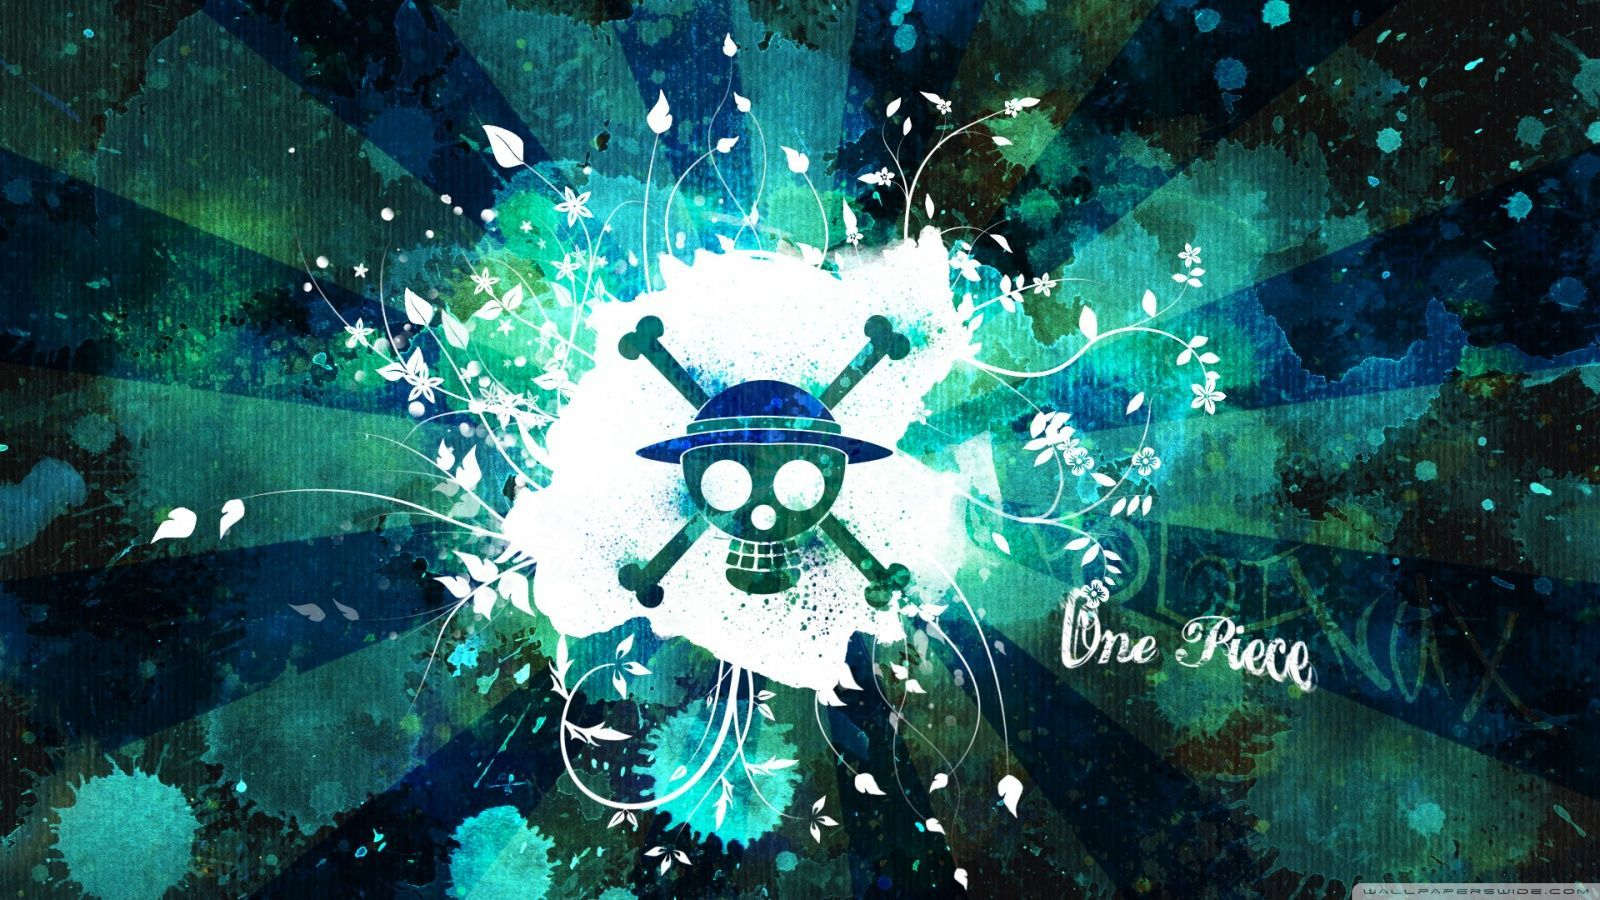 One Piece Ultra Hd Desktop Background Wallpaper For 4k Uhd One Piece Ultra Hd Desktop Backgroun In 2020 Anime Wallpaper Android Wallpaper Anime 1080p Anime Wallpaper